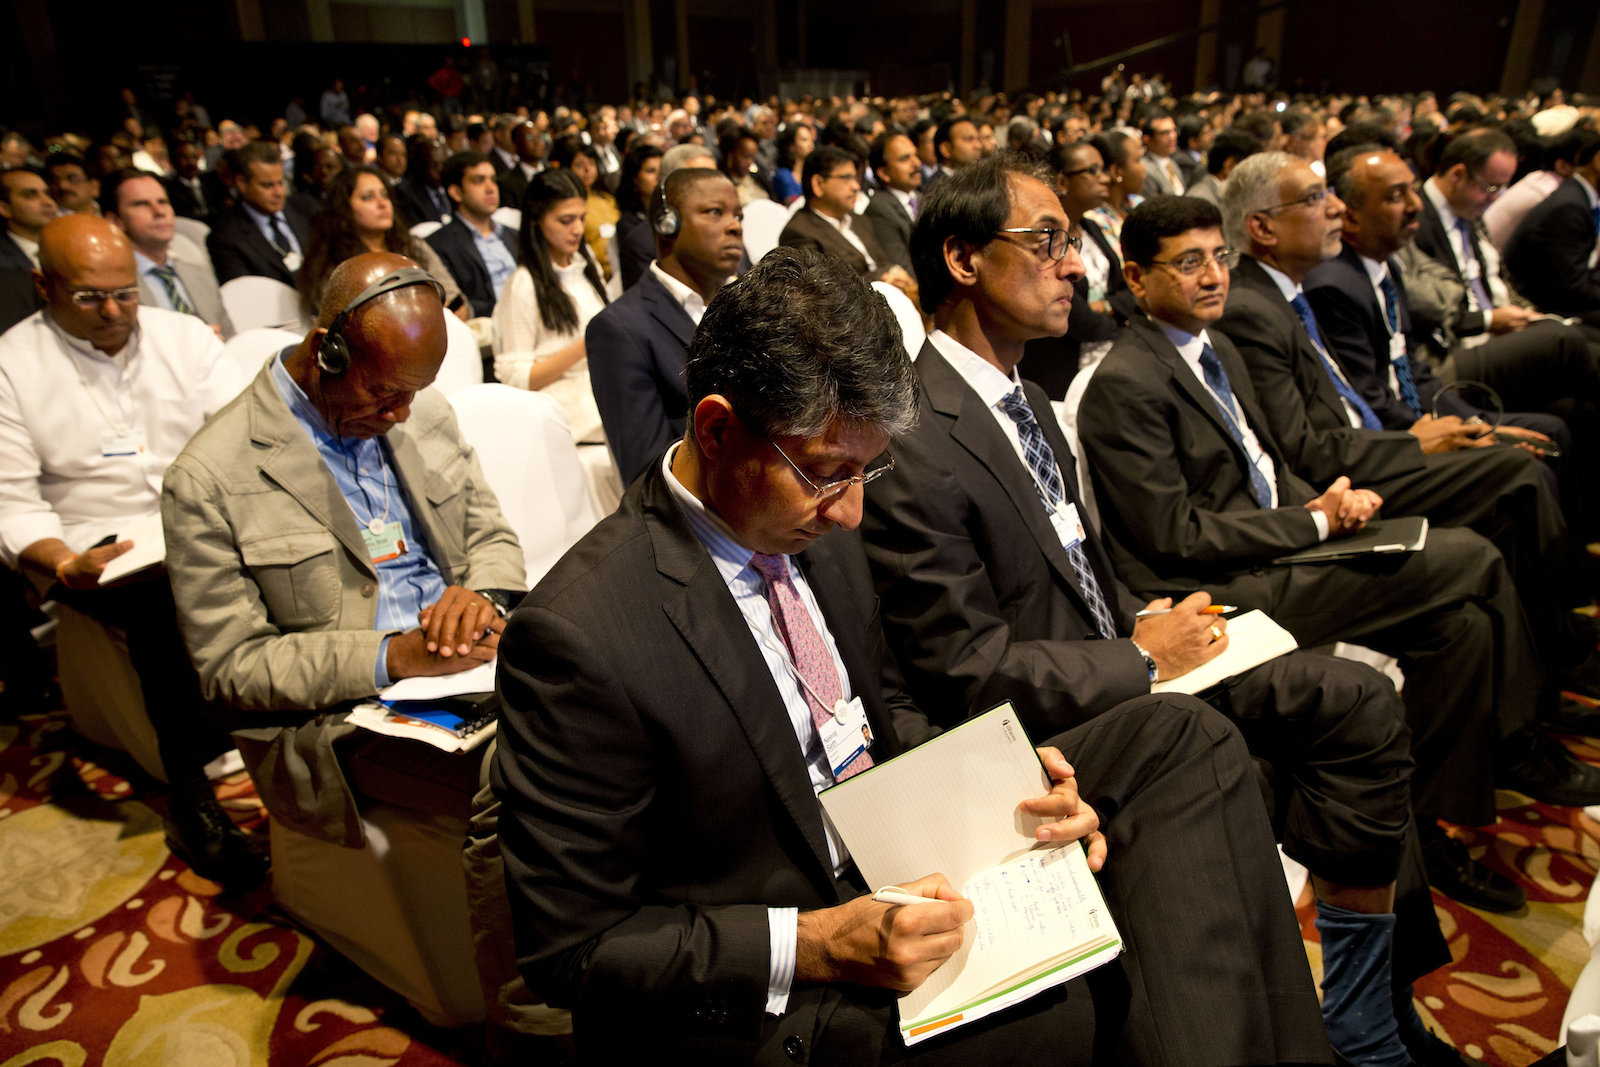 Delegates attend the opening plenary of the India Economic Summit in New Delhi, India, Wednesday, Nov. 5, 2014. Business leaders, government, civil society and academia representatives from more than 40 countries are participating in the three-day summit, organised by the World Economic Forum in partnership with Confederation of Indian Industry (CII), according to news reports.